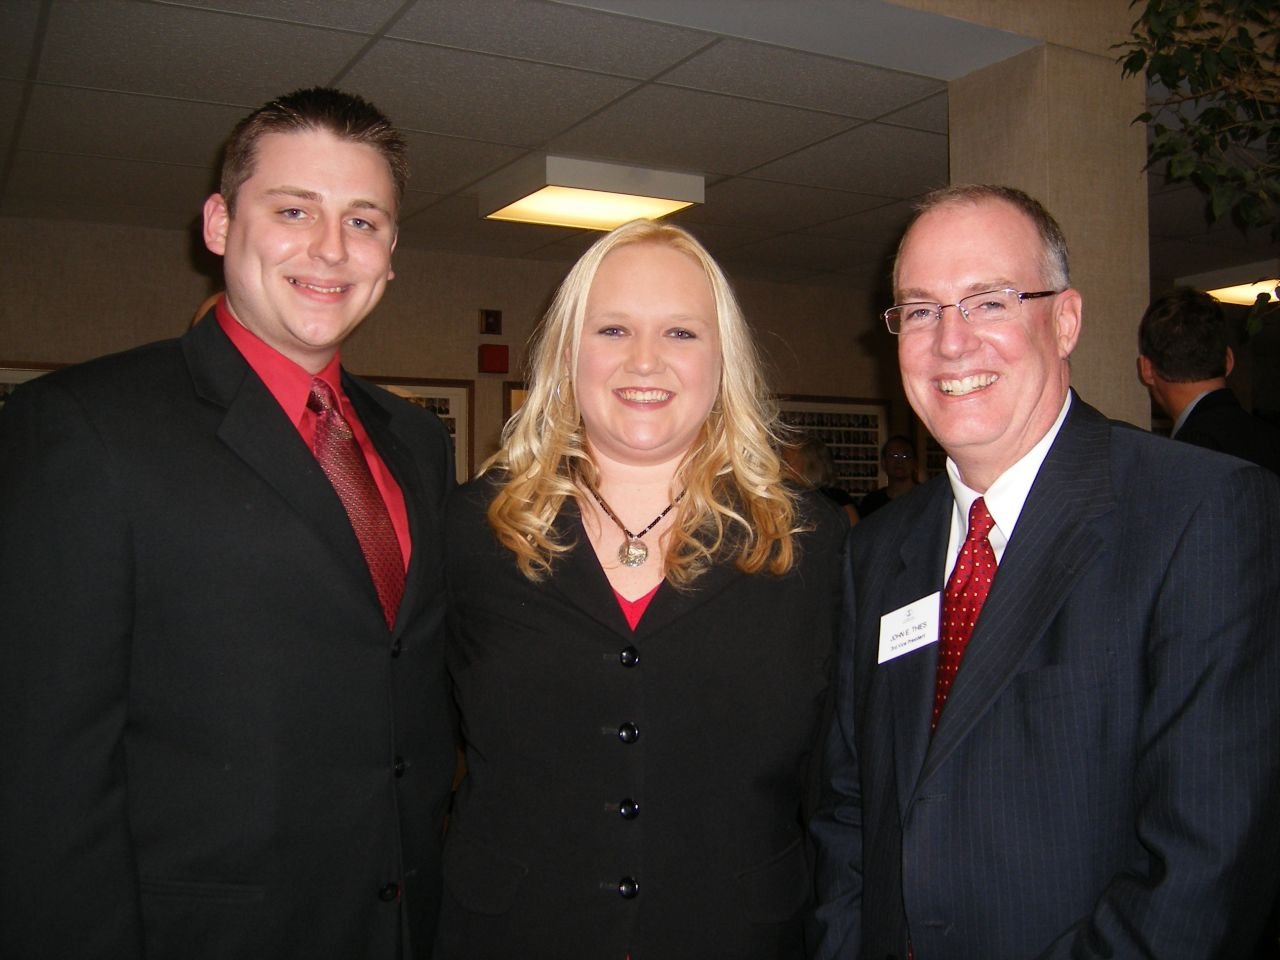 New Admittee Cortney Kuntze (center) with her husband, Paul (left), and ISBA 3rd Vice President Thies